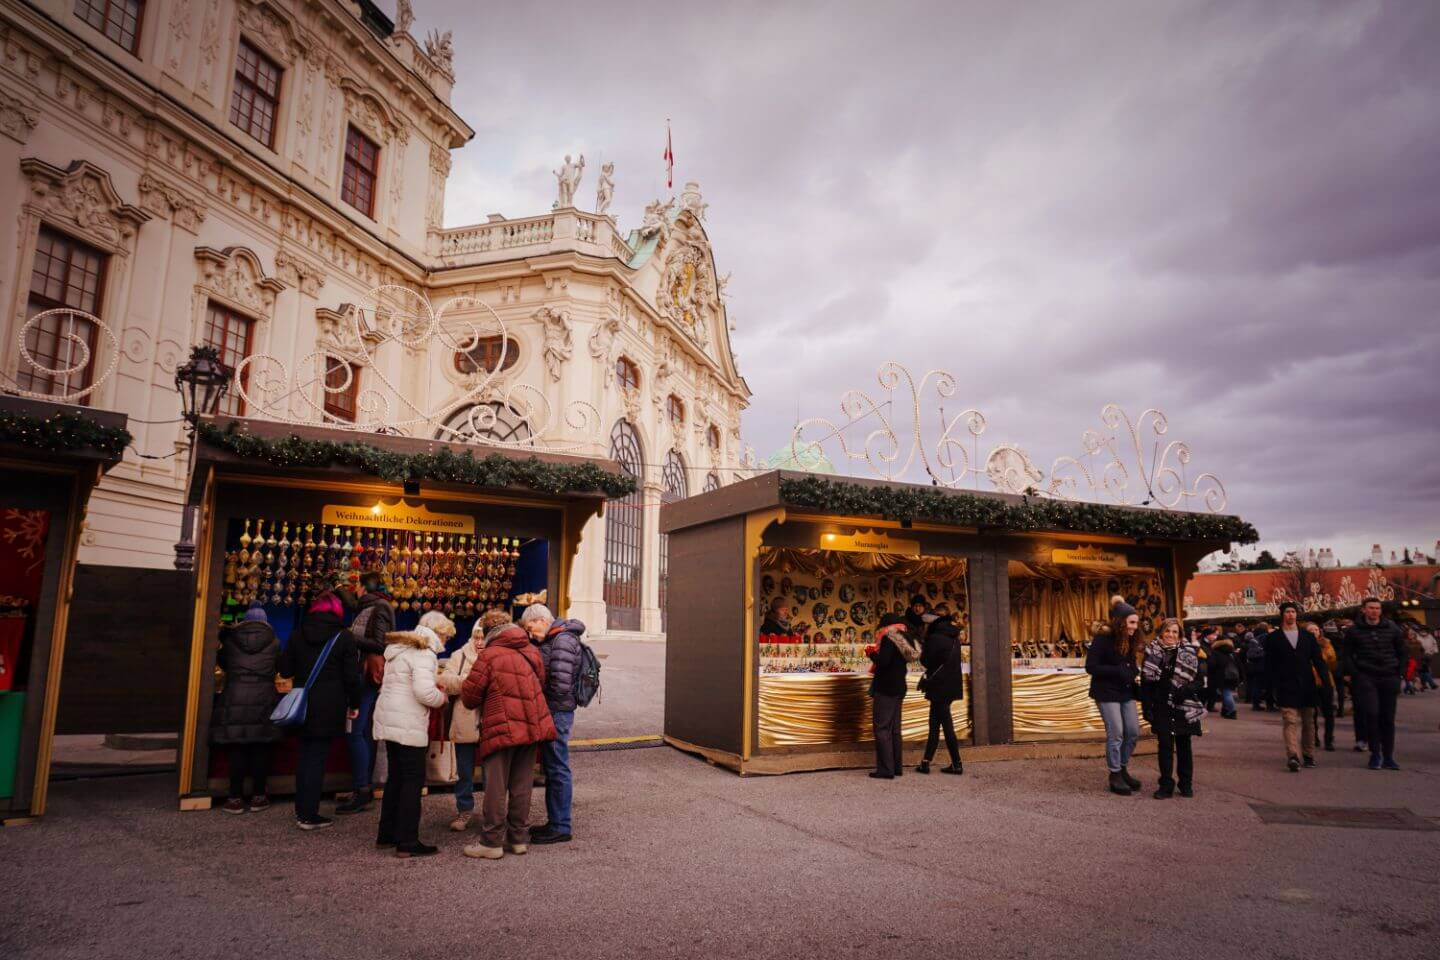 Belvedere Palace Christmas Market - Things to do in Vienna in Decemeber